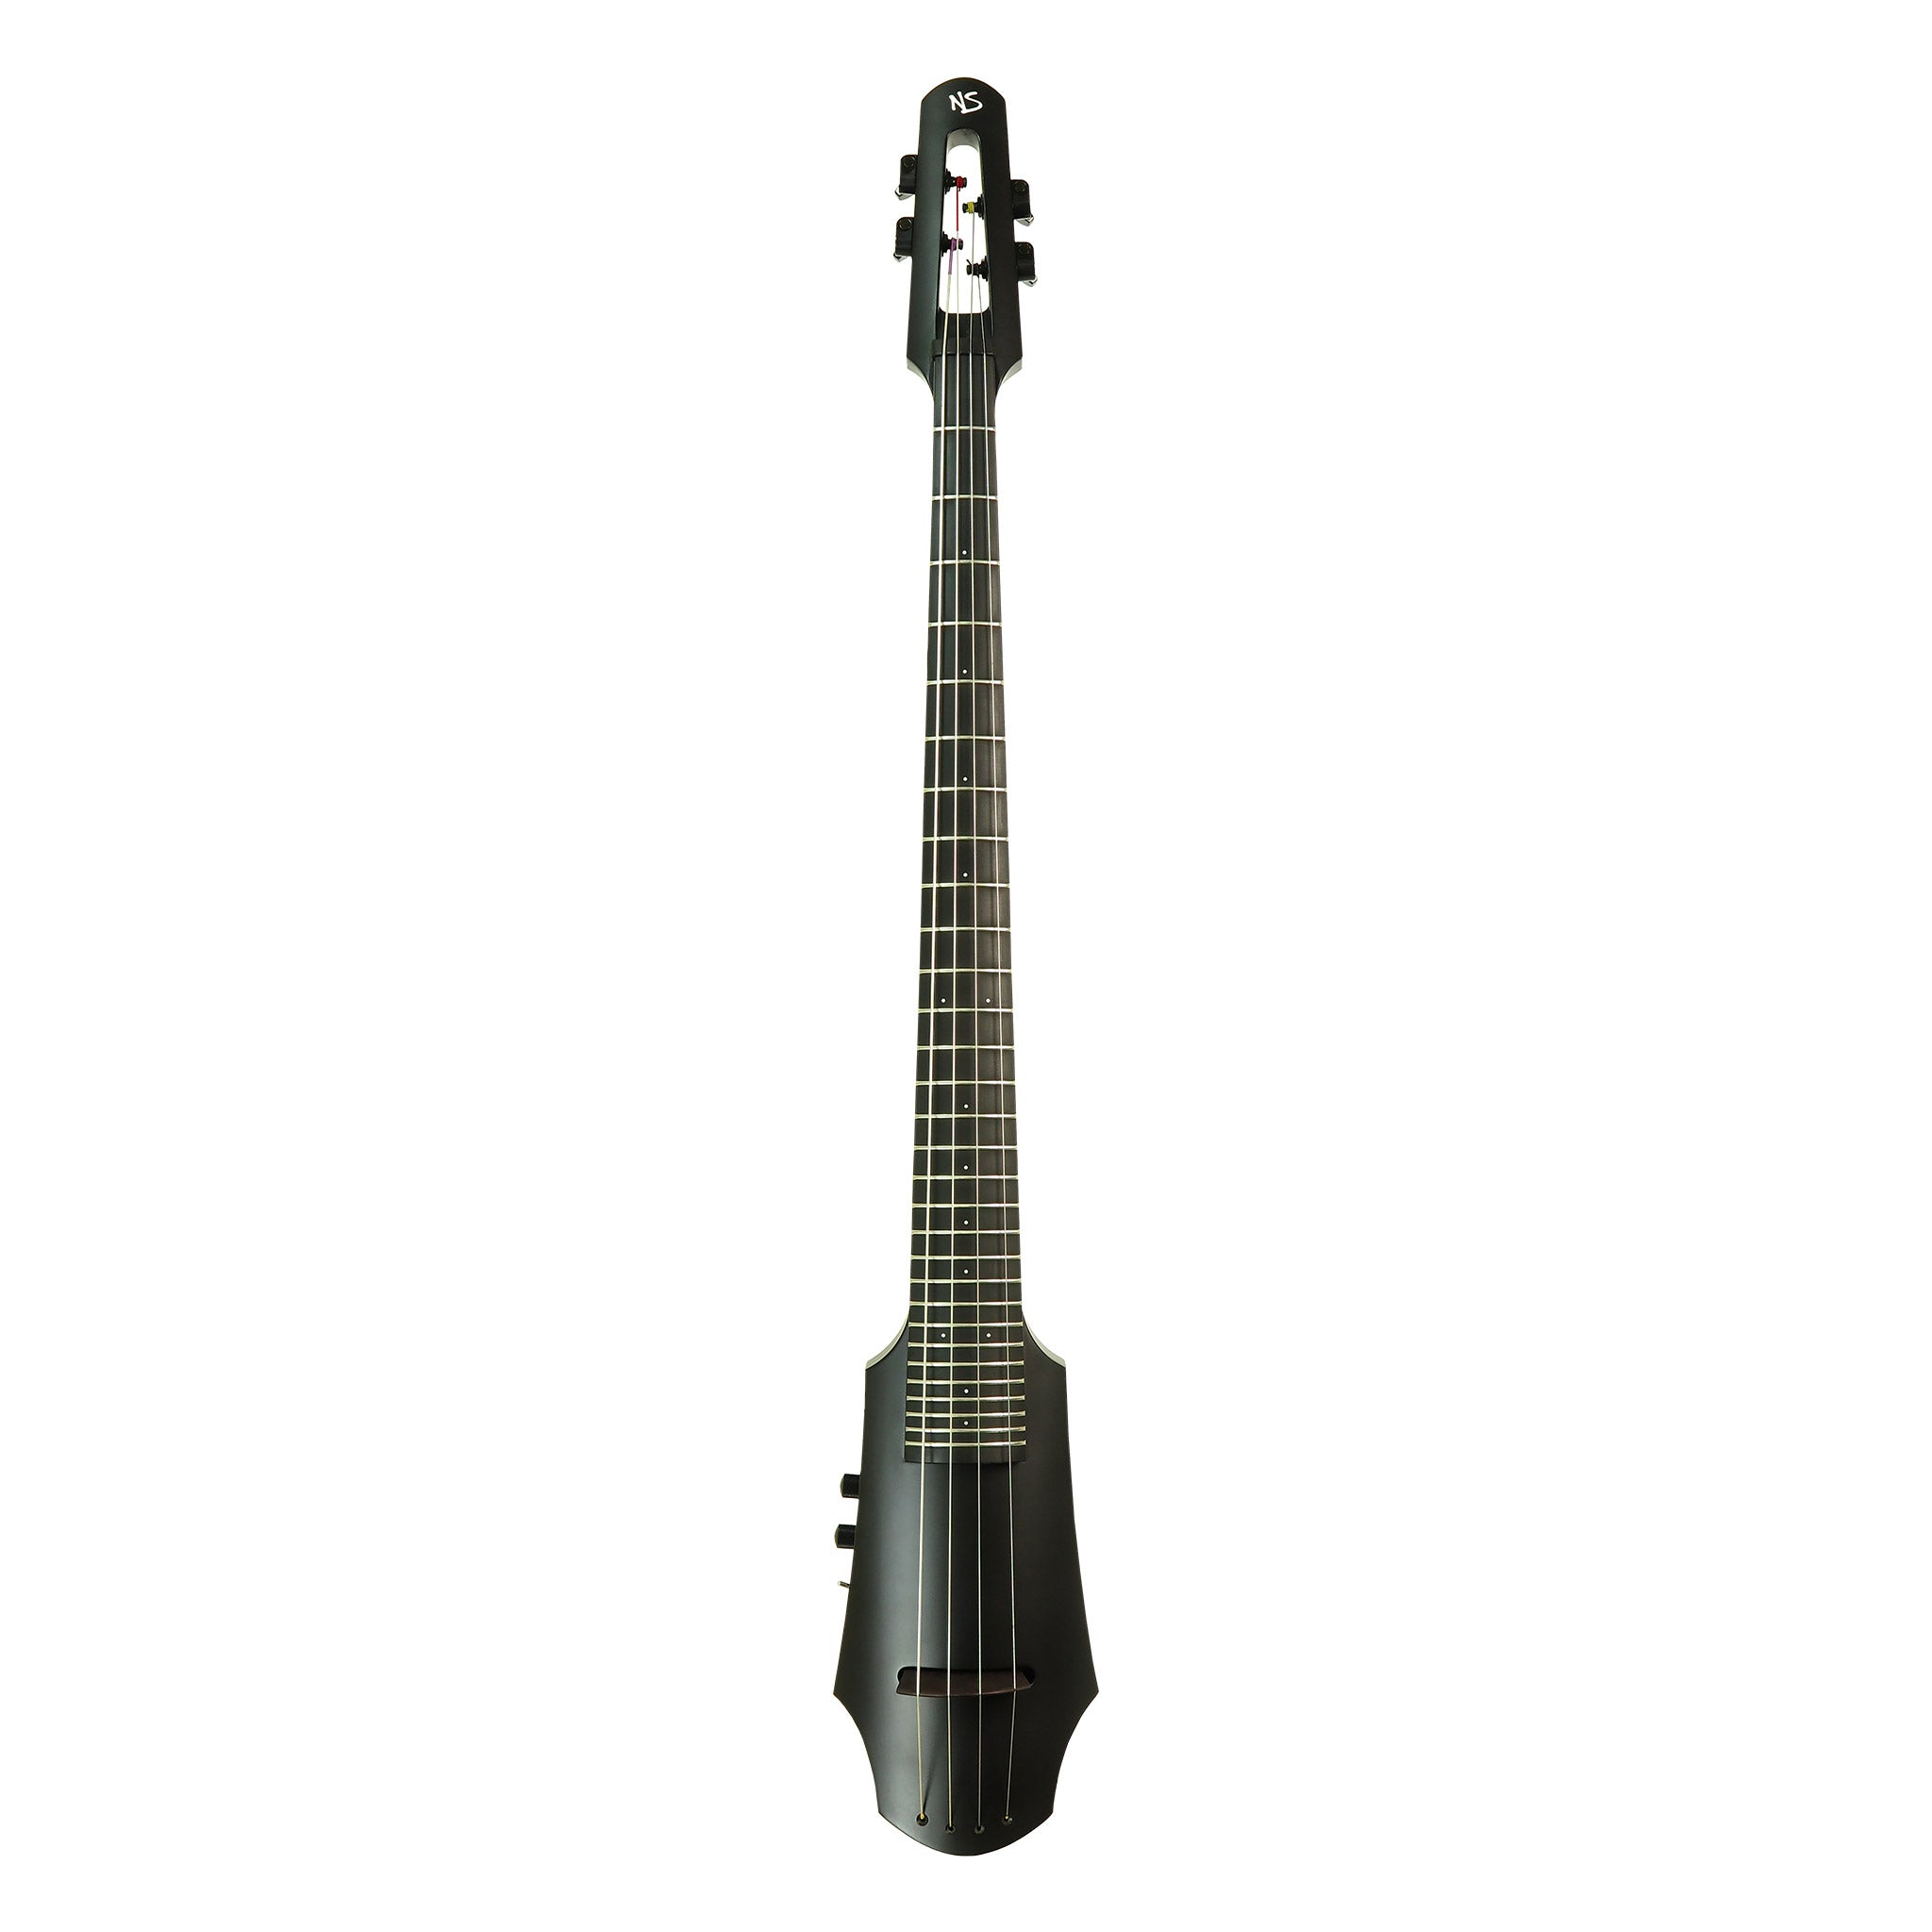 NS Design NXTa 4-string Fretted Electic Cello